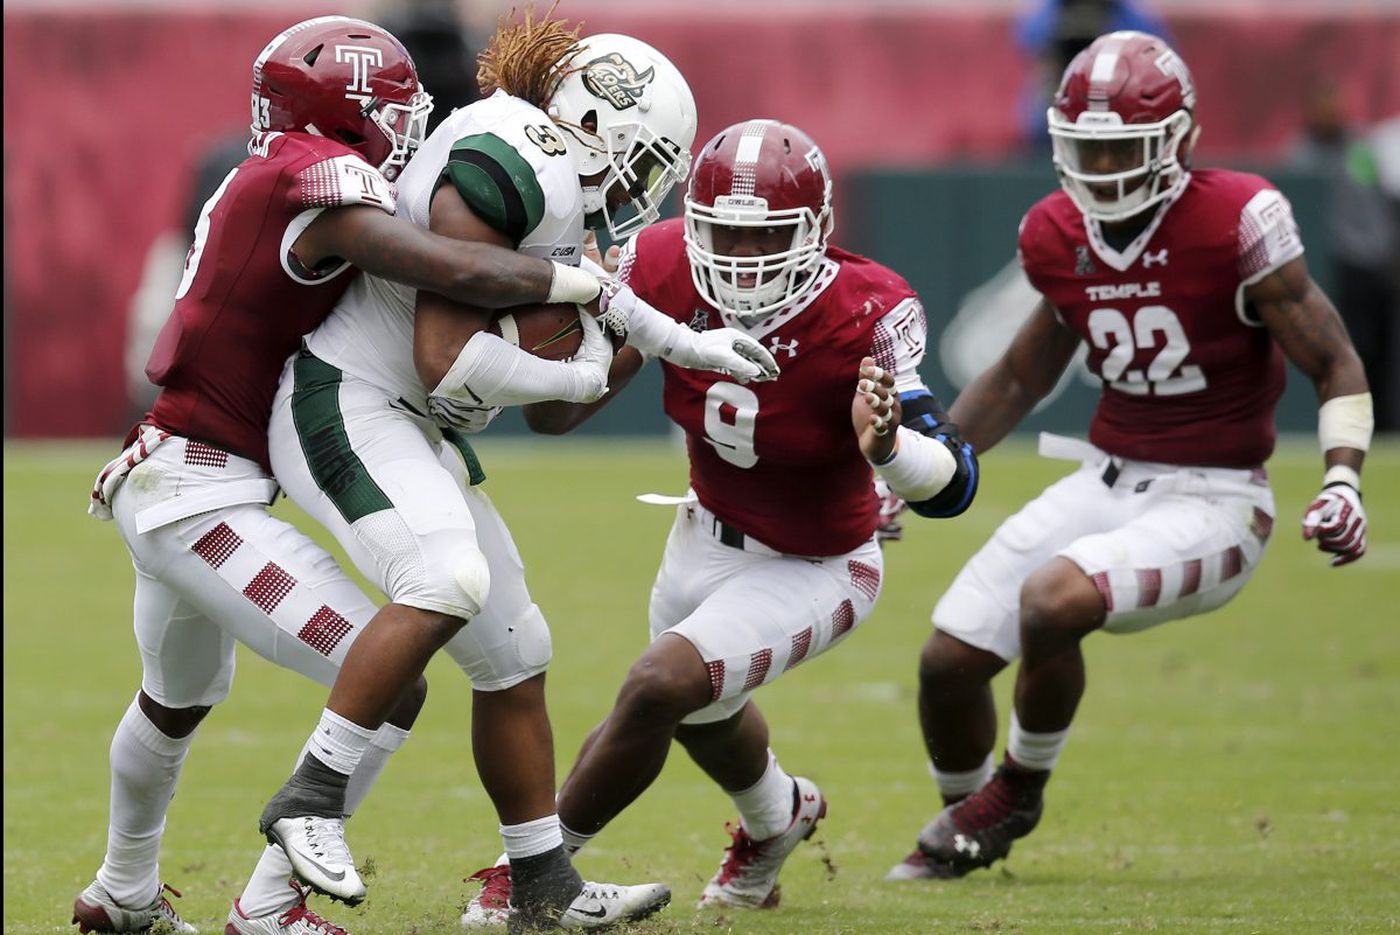 Temple faces major challenge to become bowl eligible